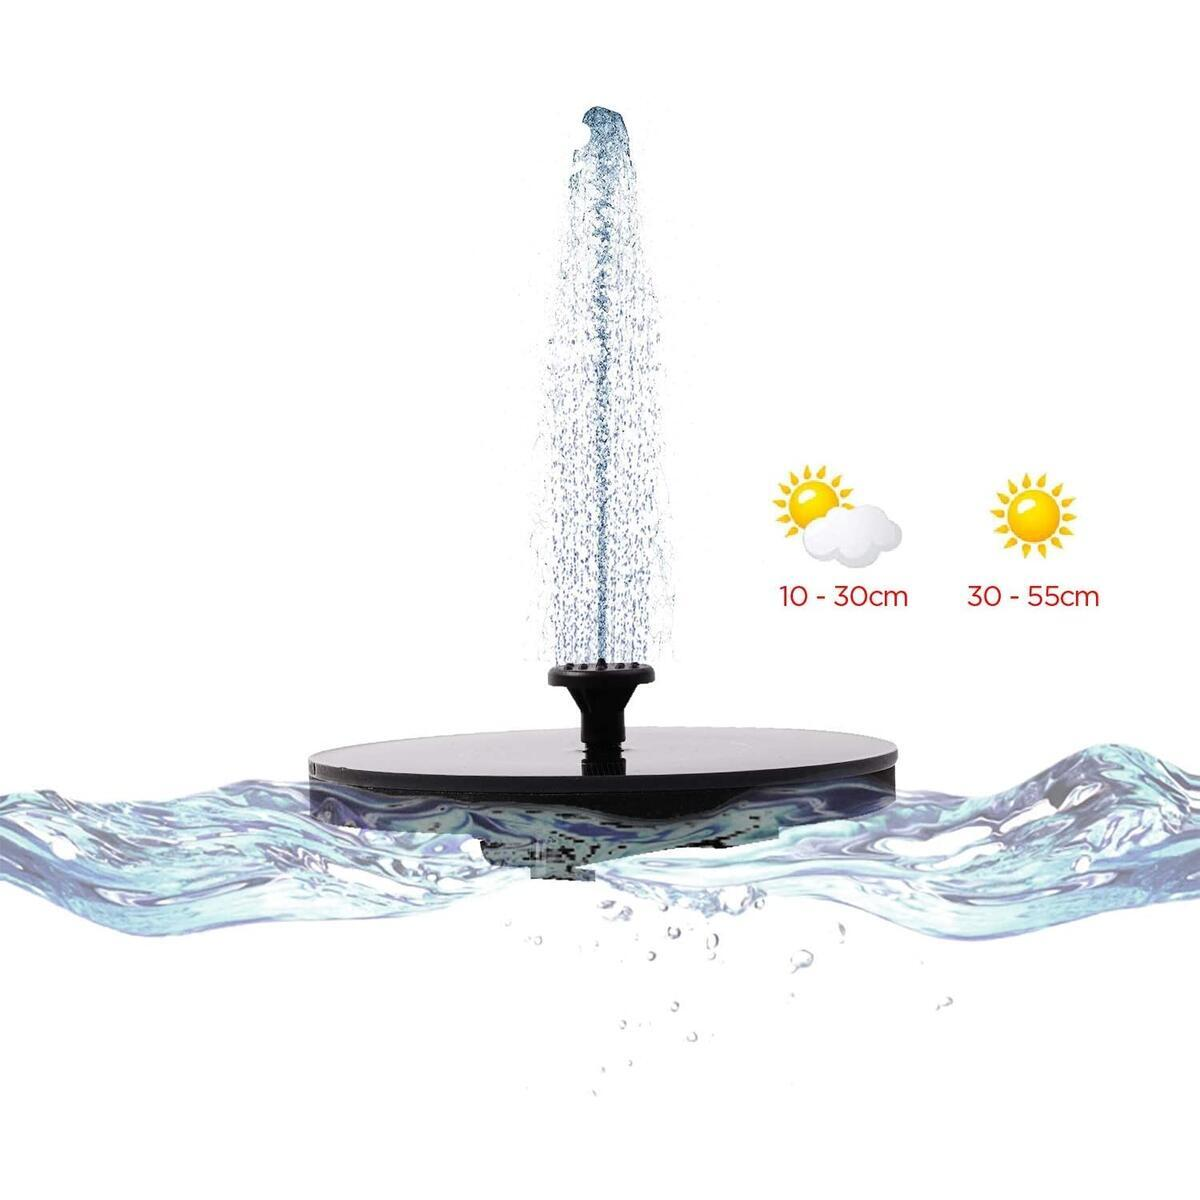 BOTARI 2020 The Newest Solar Powered Fountain Pump for Bird Bath, Upgraded Outdoor Water Fountain Pump Floating Solar Panel Kit for Garden Decoration, Small Pond, Patio, Pool, Back Yard and Fish Tank